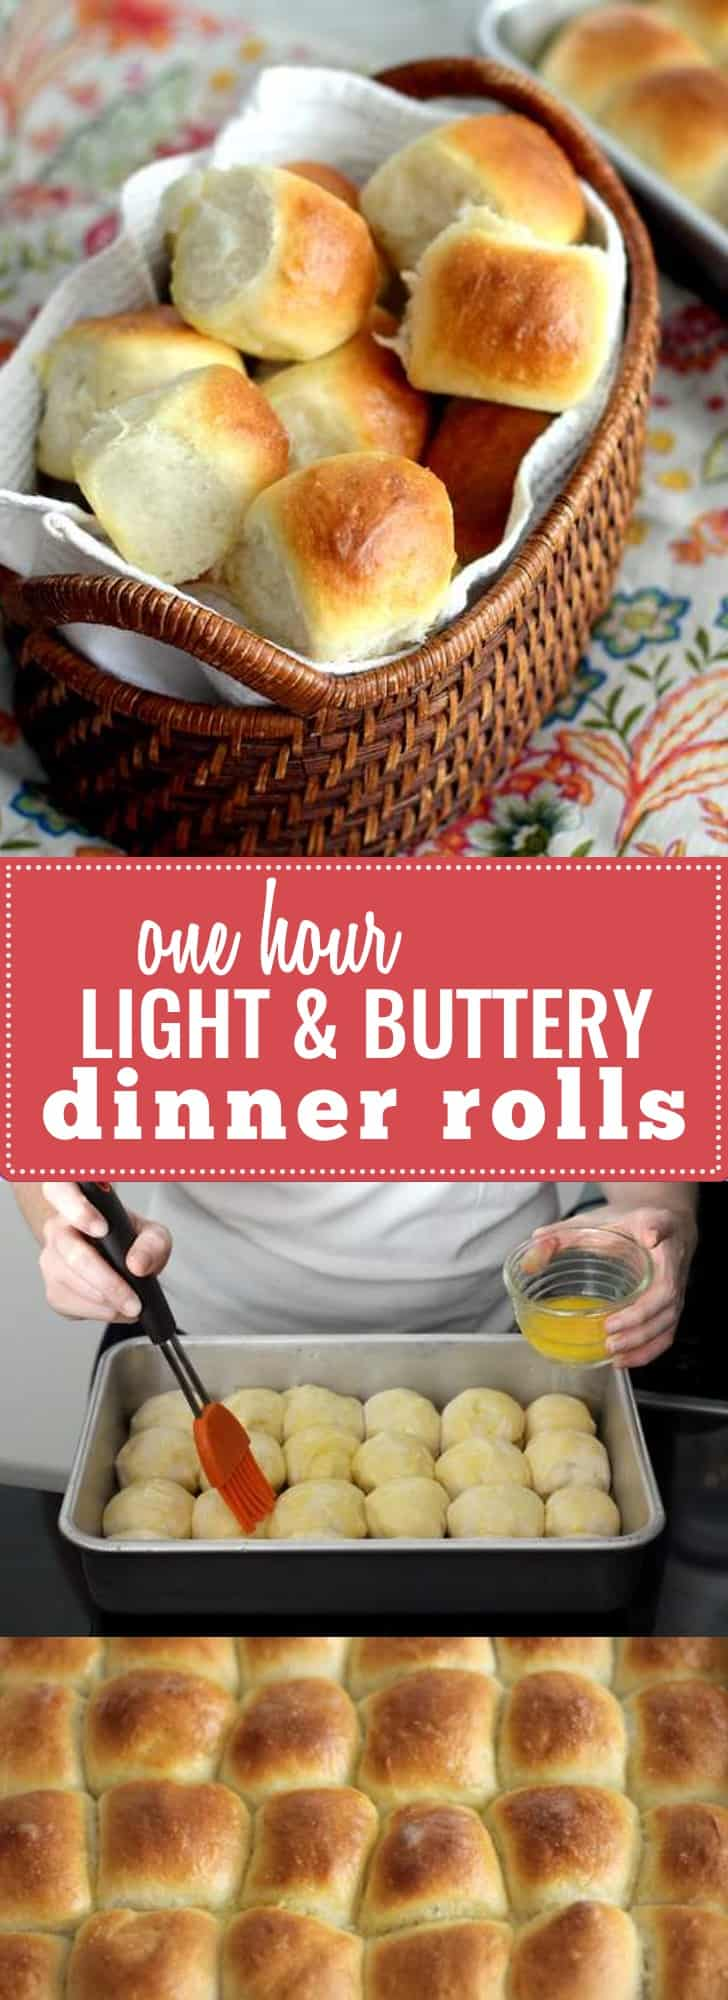 One Hour Light and Buttery Dinner Rolls- Have delicious, buttery, warm dinner rolls in one hour- for real! Perfect for any dinner party or family meal.